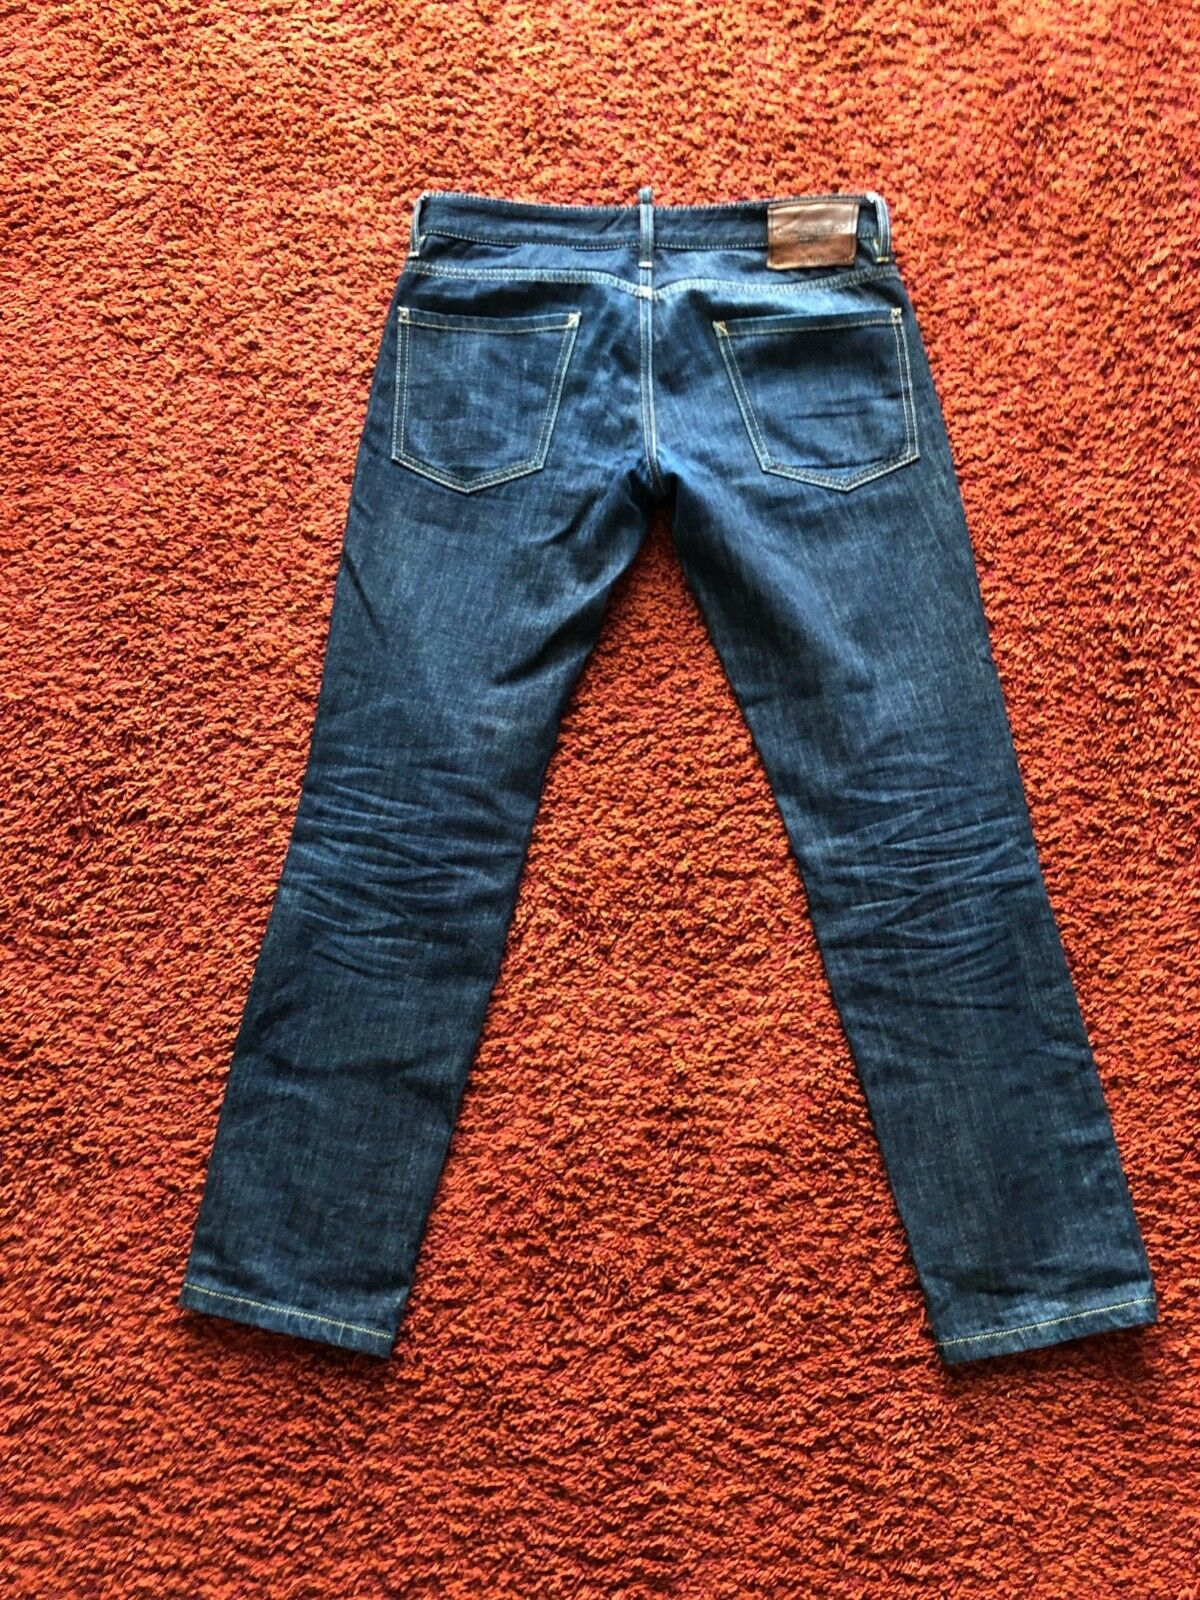 DSQUARED2 Coll Guy Jeans Denim bluee Size L